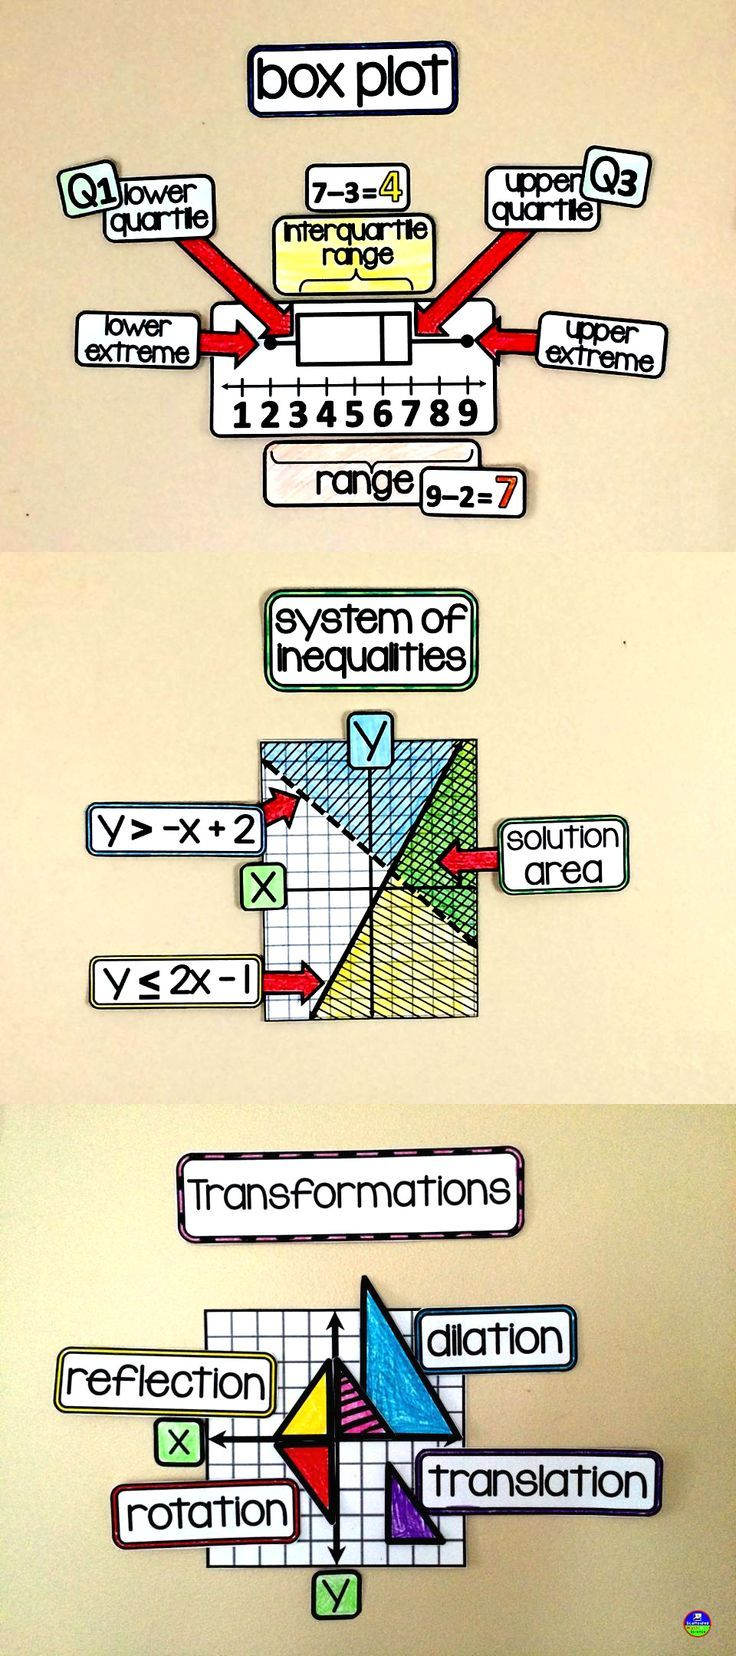 305 best Secondary Math images on Pinterest | School, Class room and ...